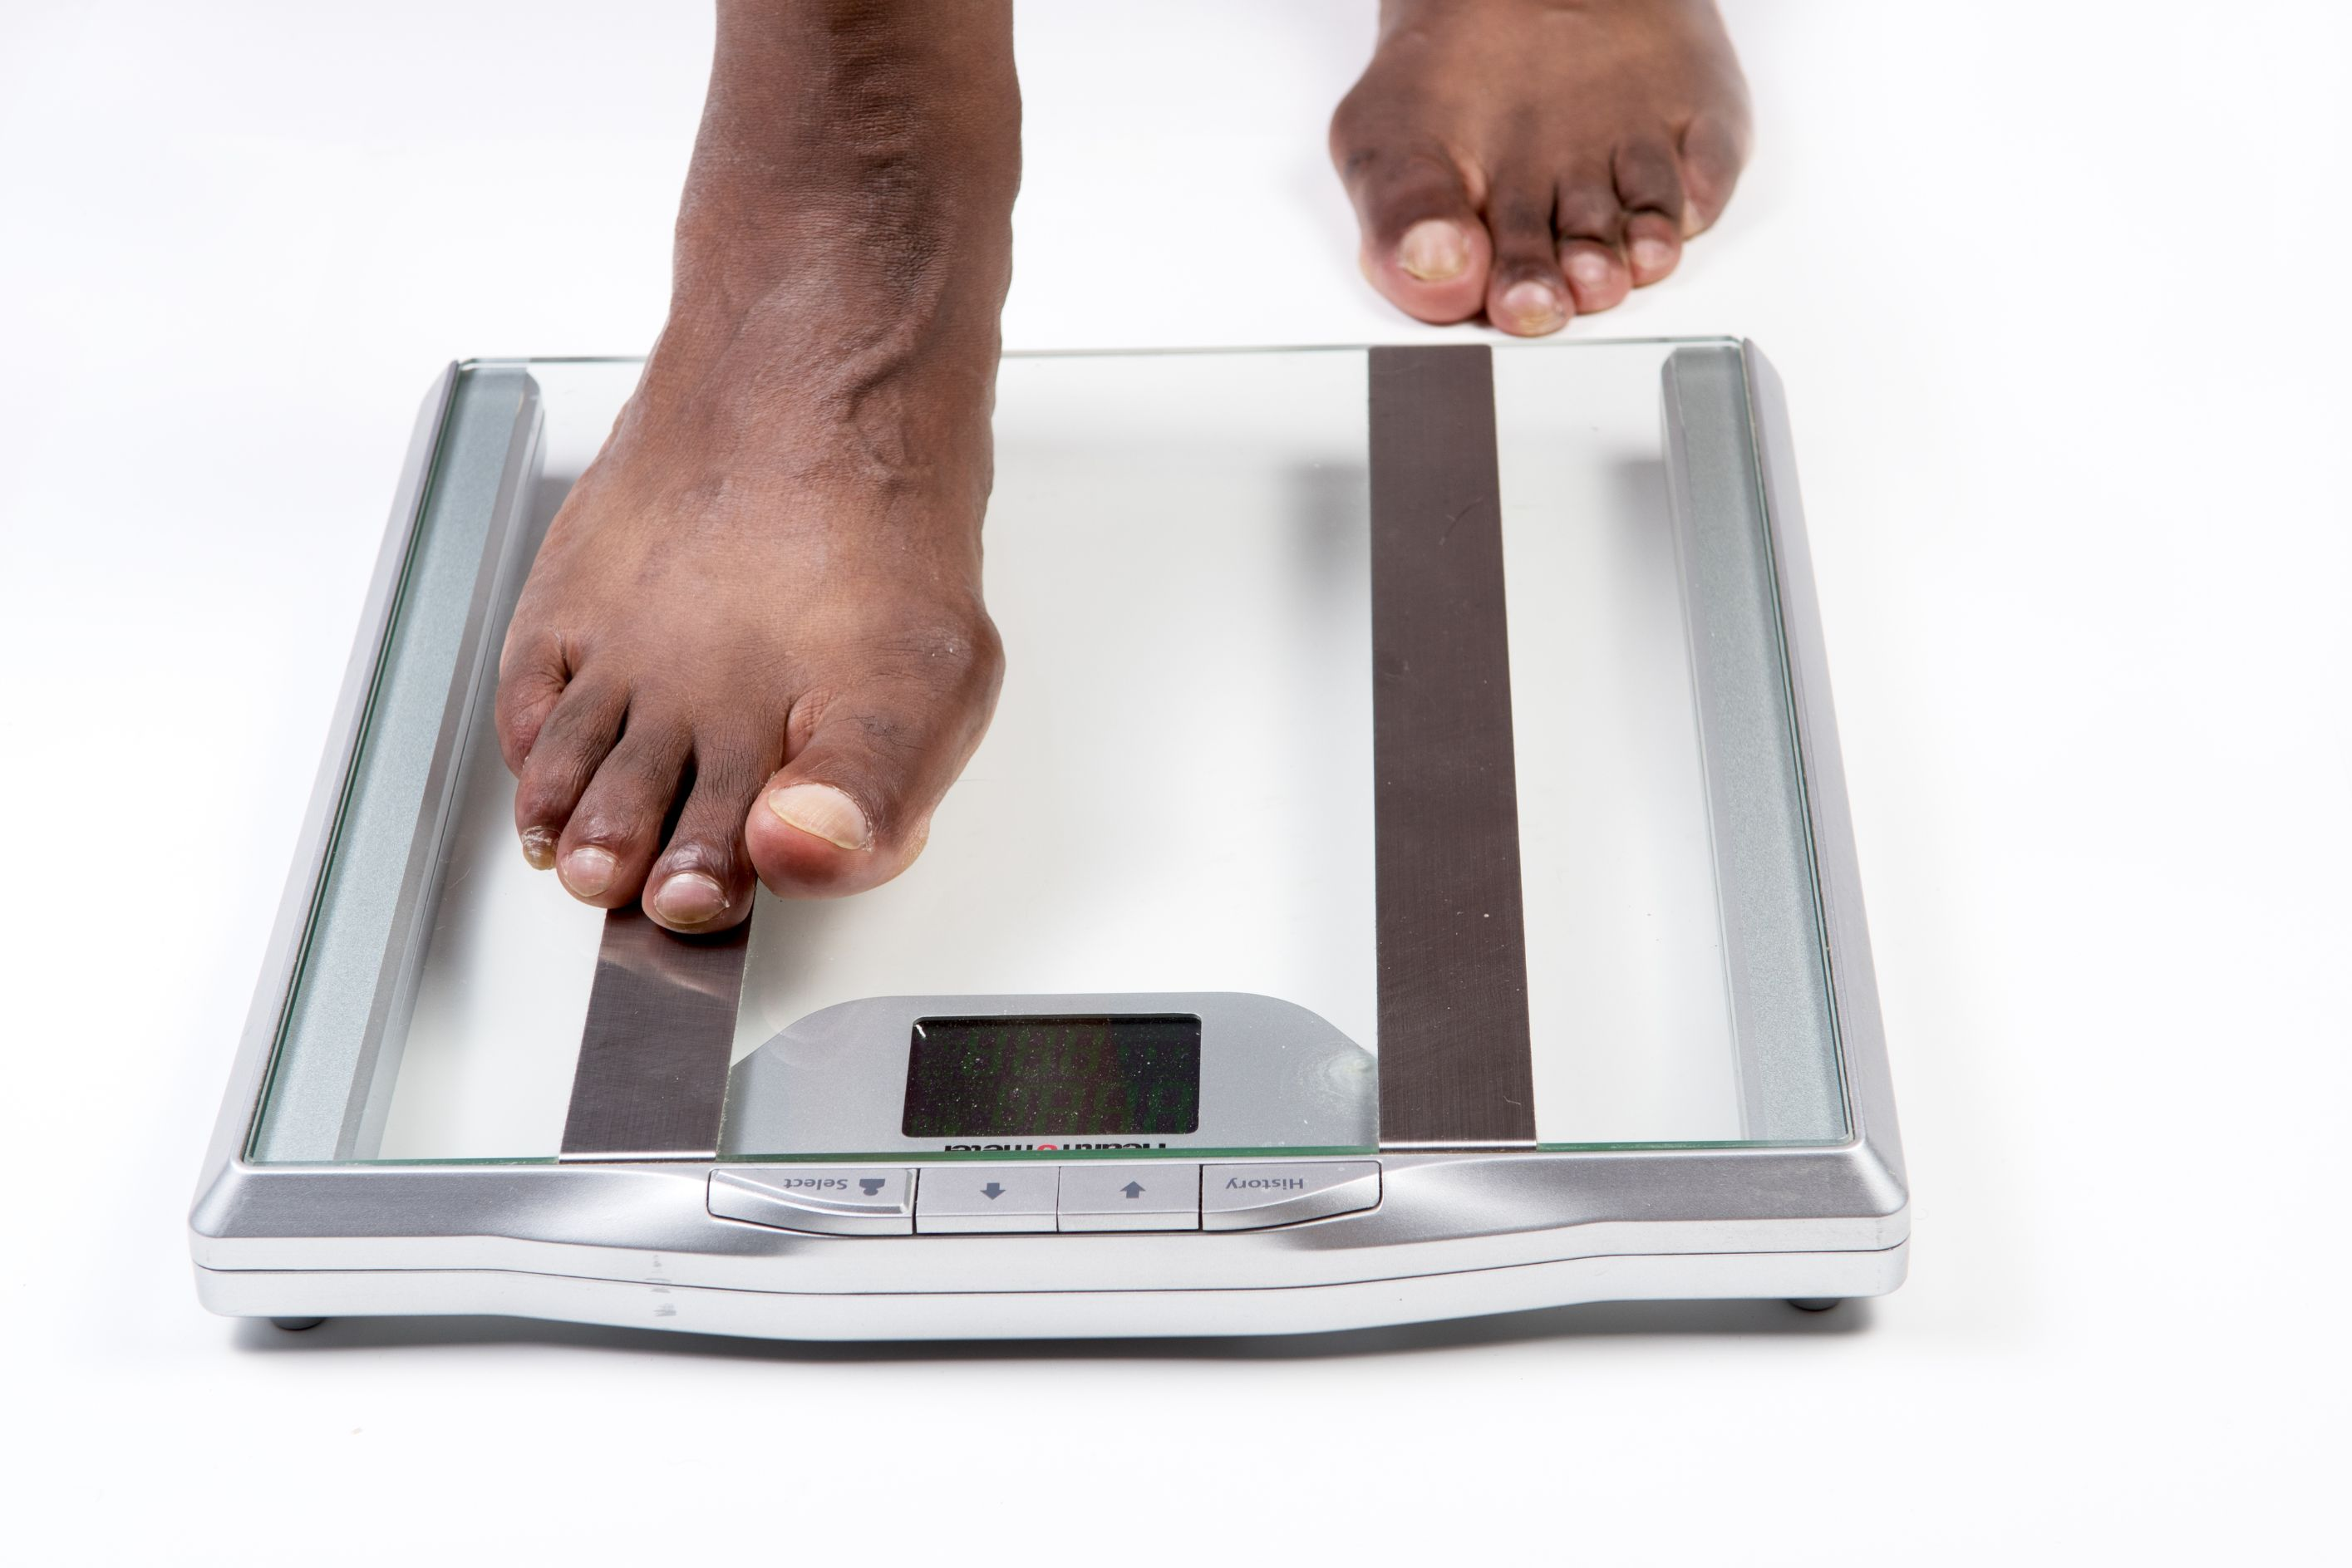 About Adult Bmi